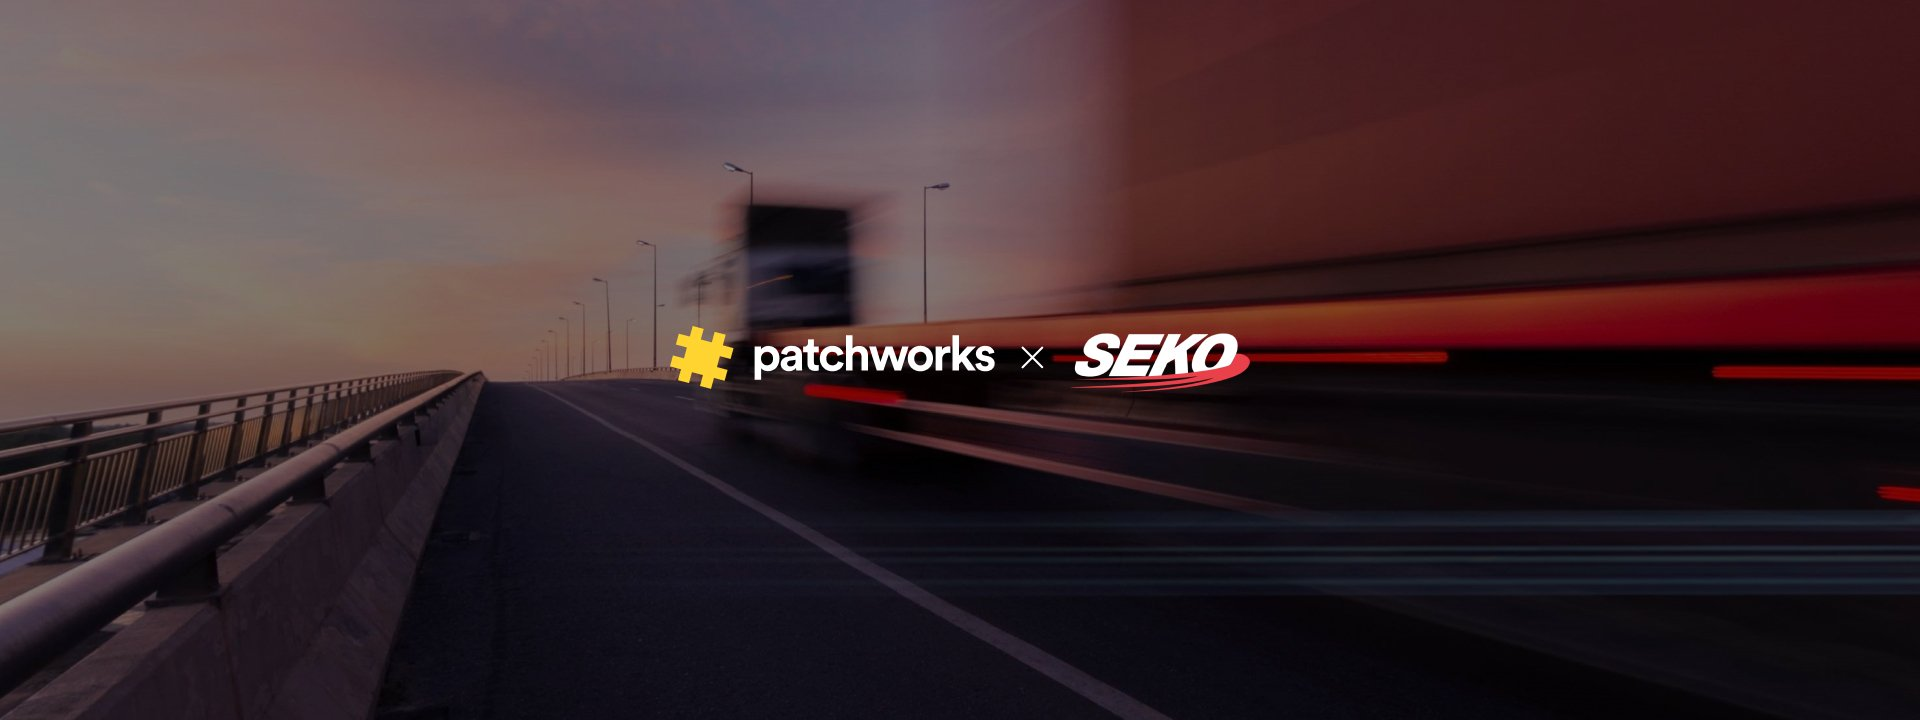 Patchworks x SEKO: A fast-track to success